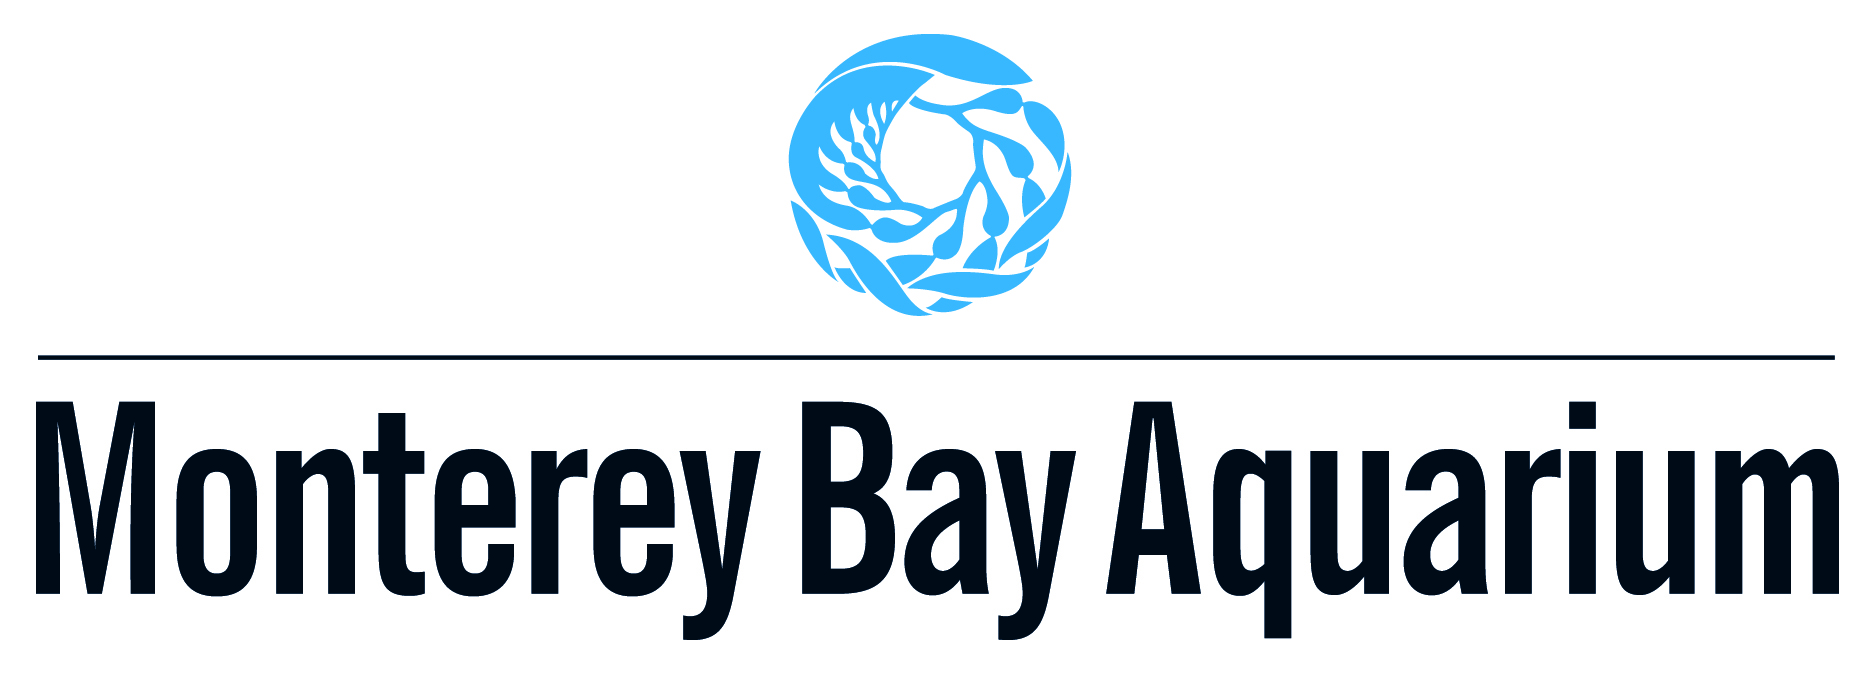 The mission of the Monterey Bay Aquarium is to inspire conservation of the ocean. Purchase your tickets by clicking here. Use Store User Name - FAST1003